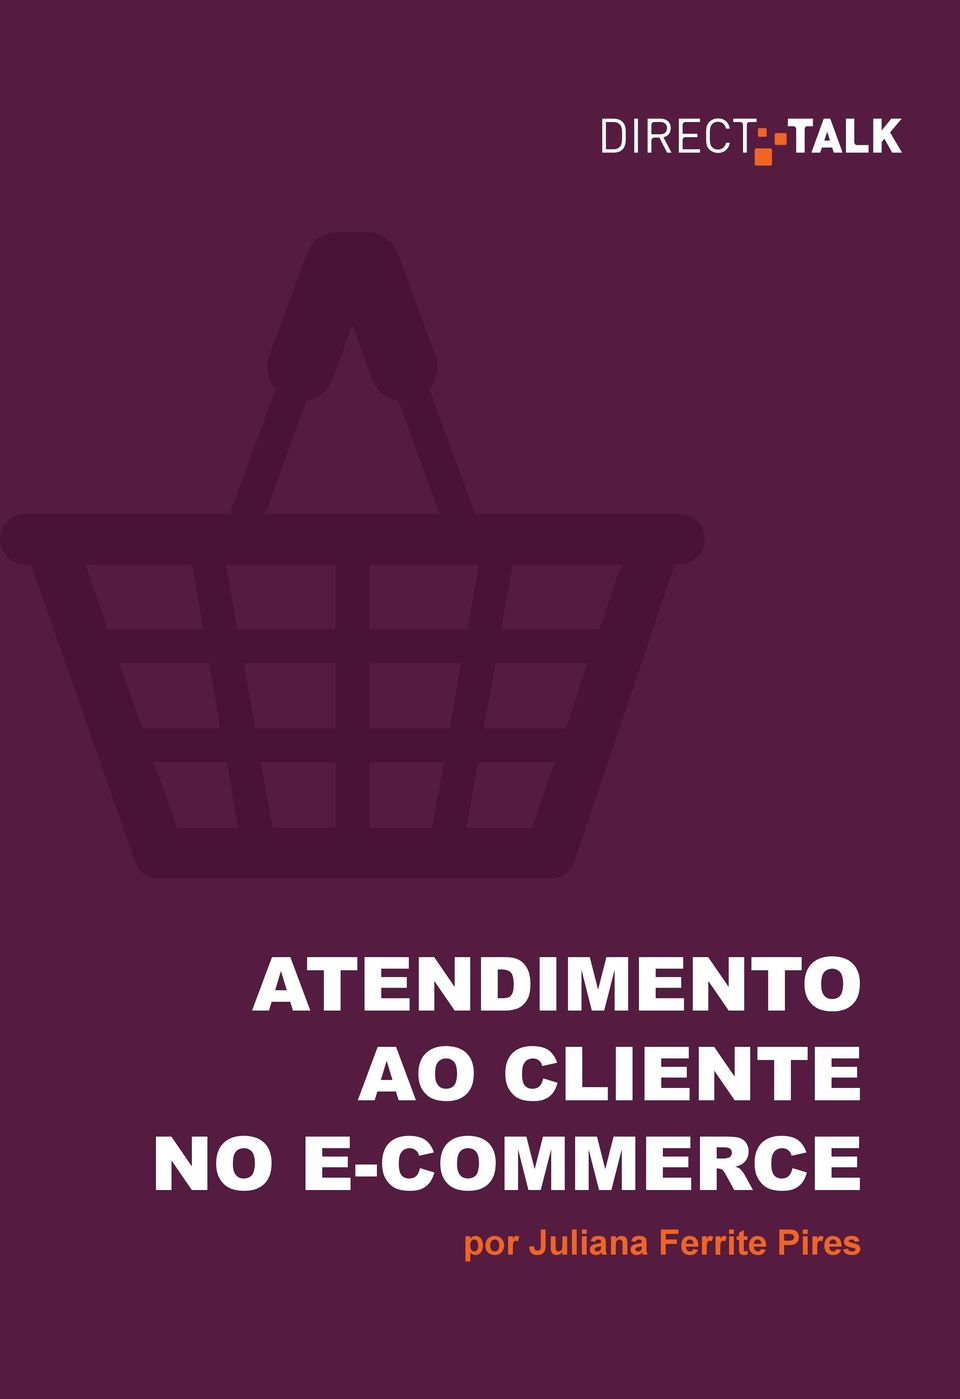 E-COMMERCE por